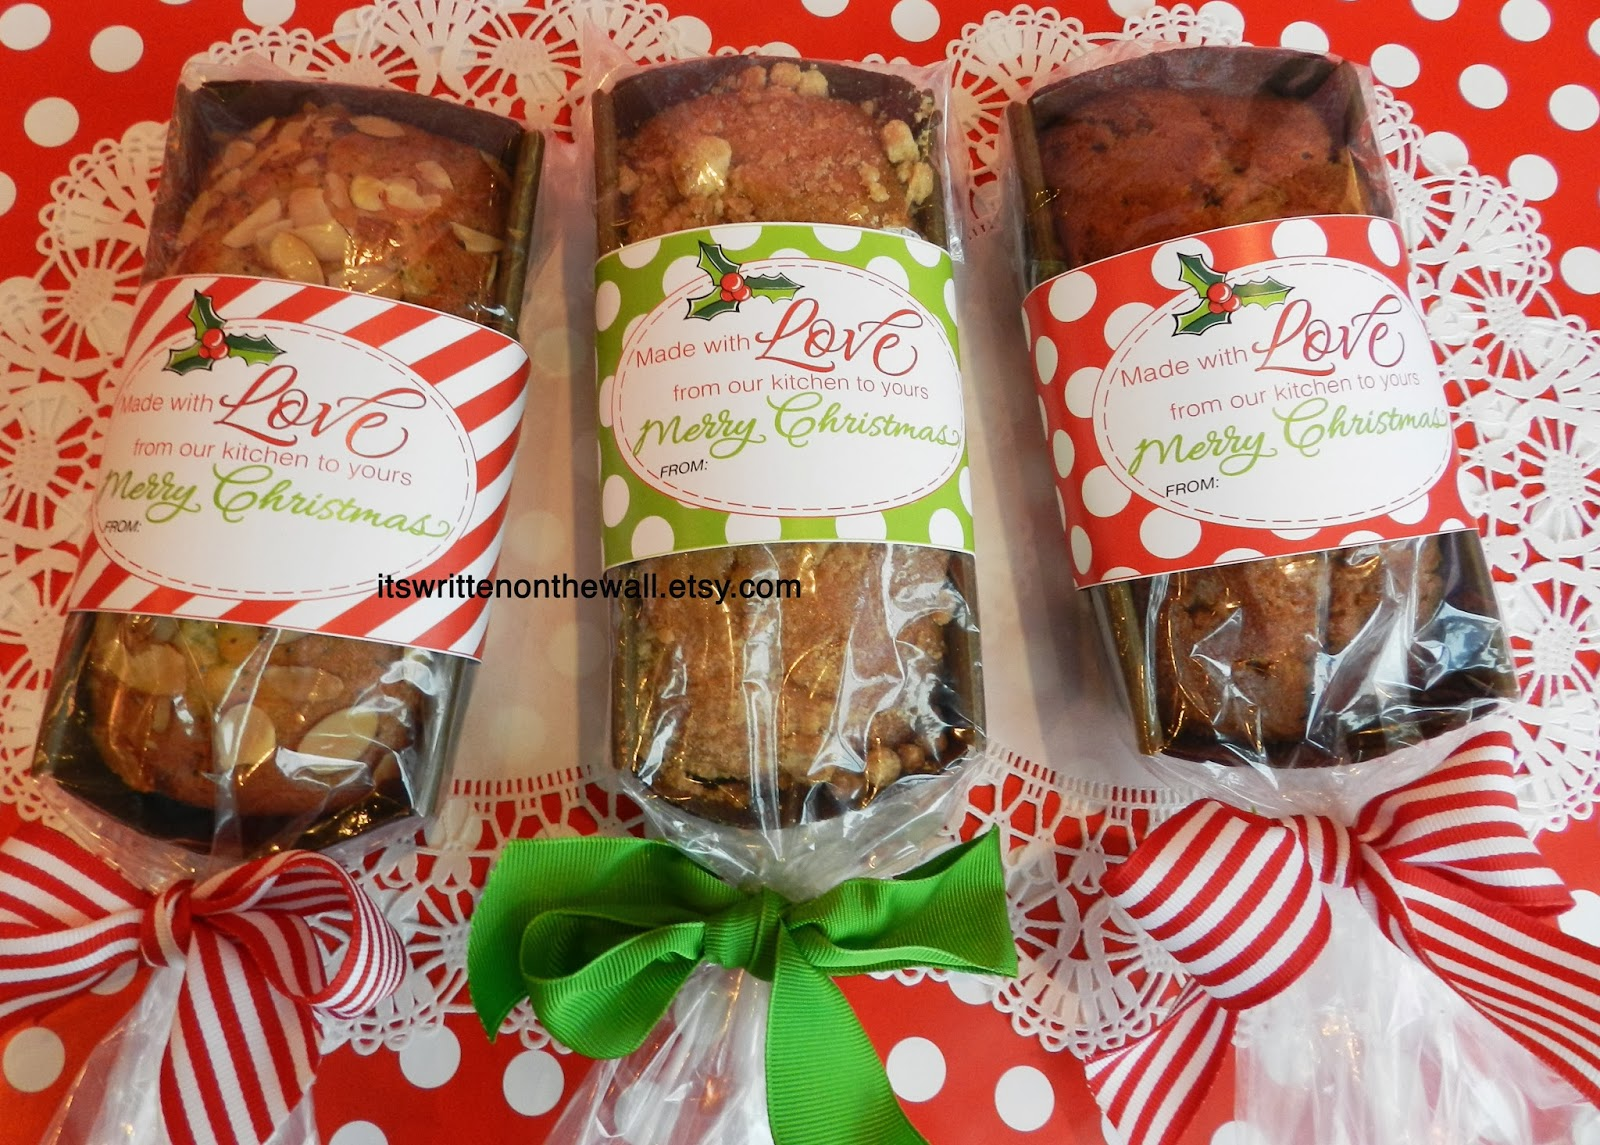 Christmas neighbor gifts tags for homemade or store bought for Homemade baked goods for christmas gifts